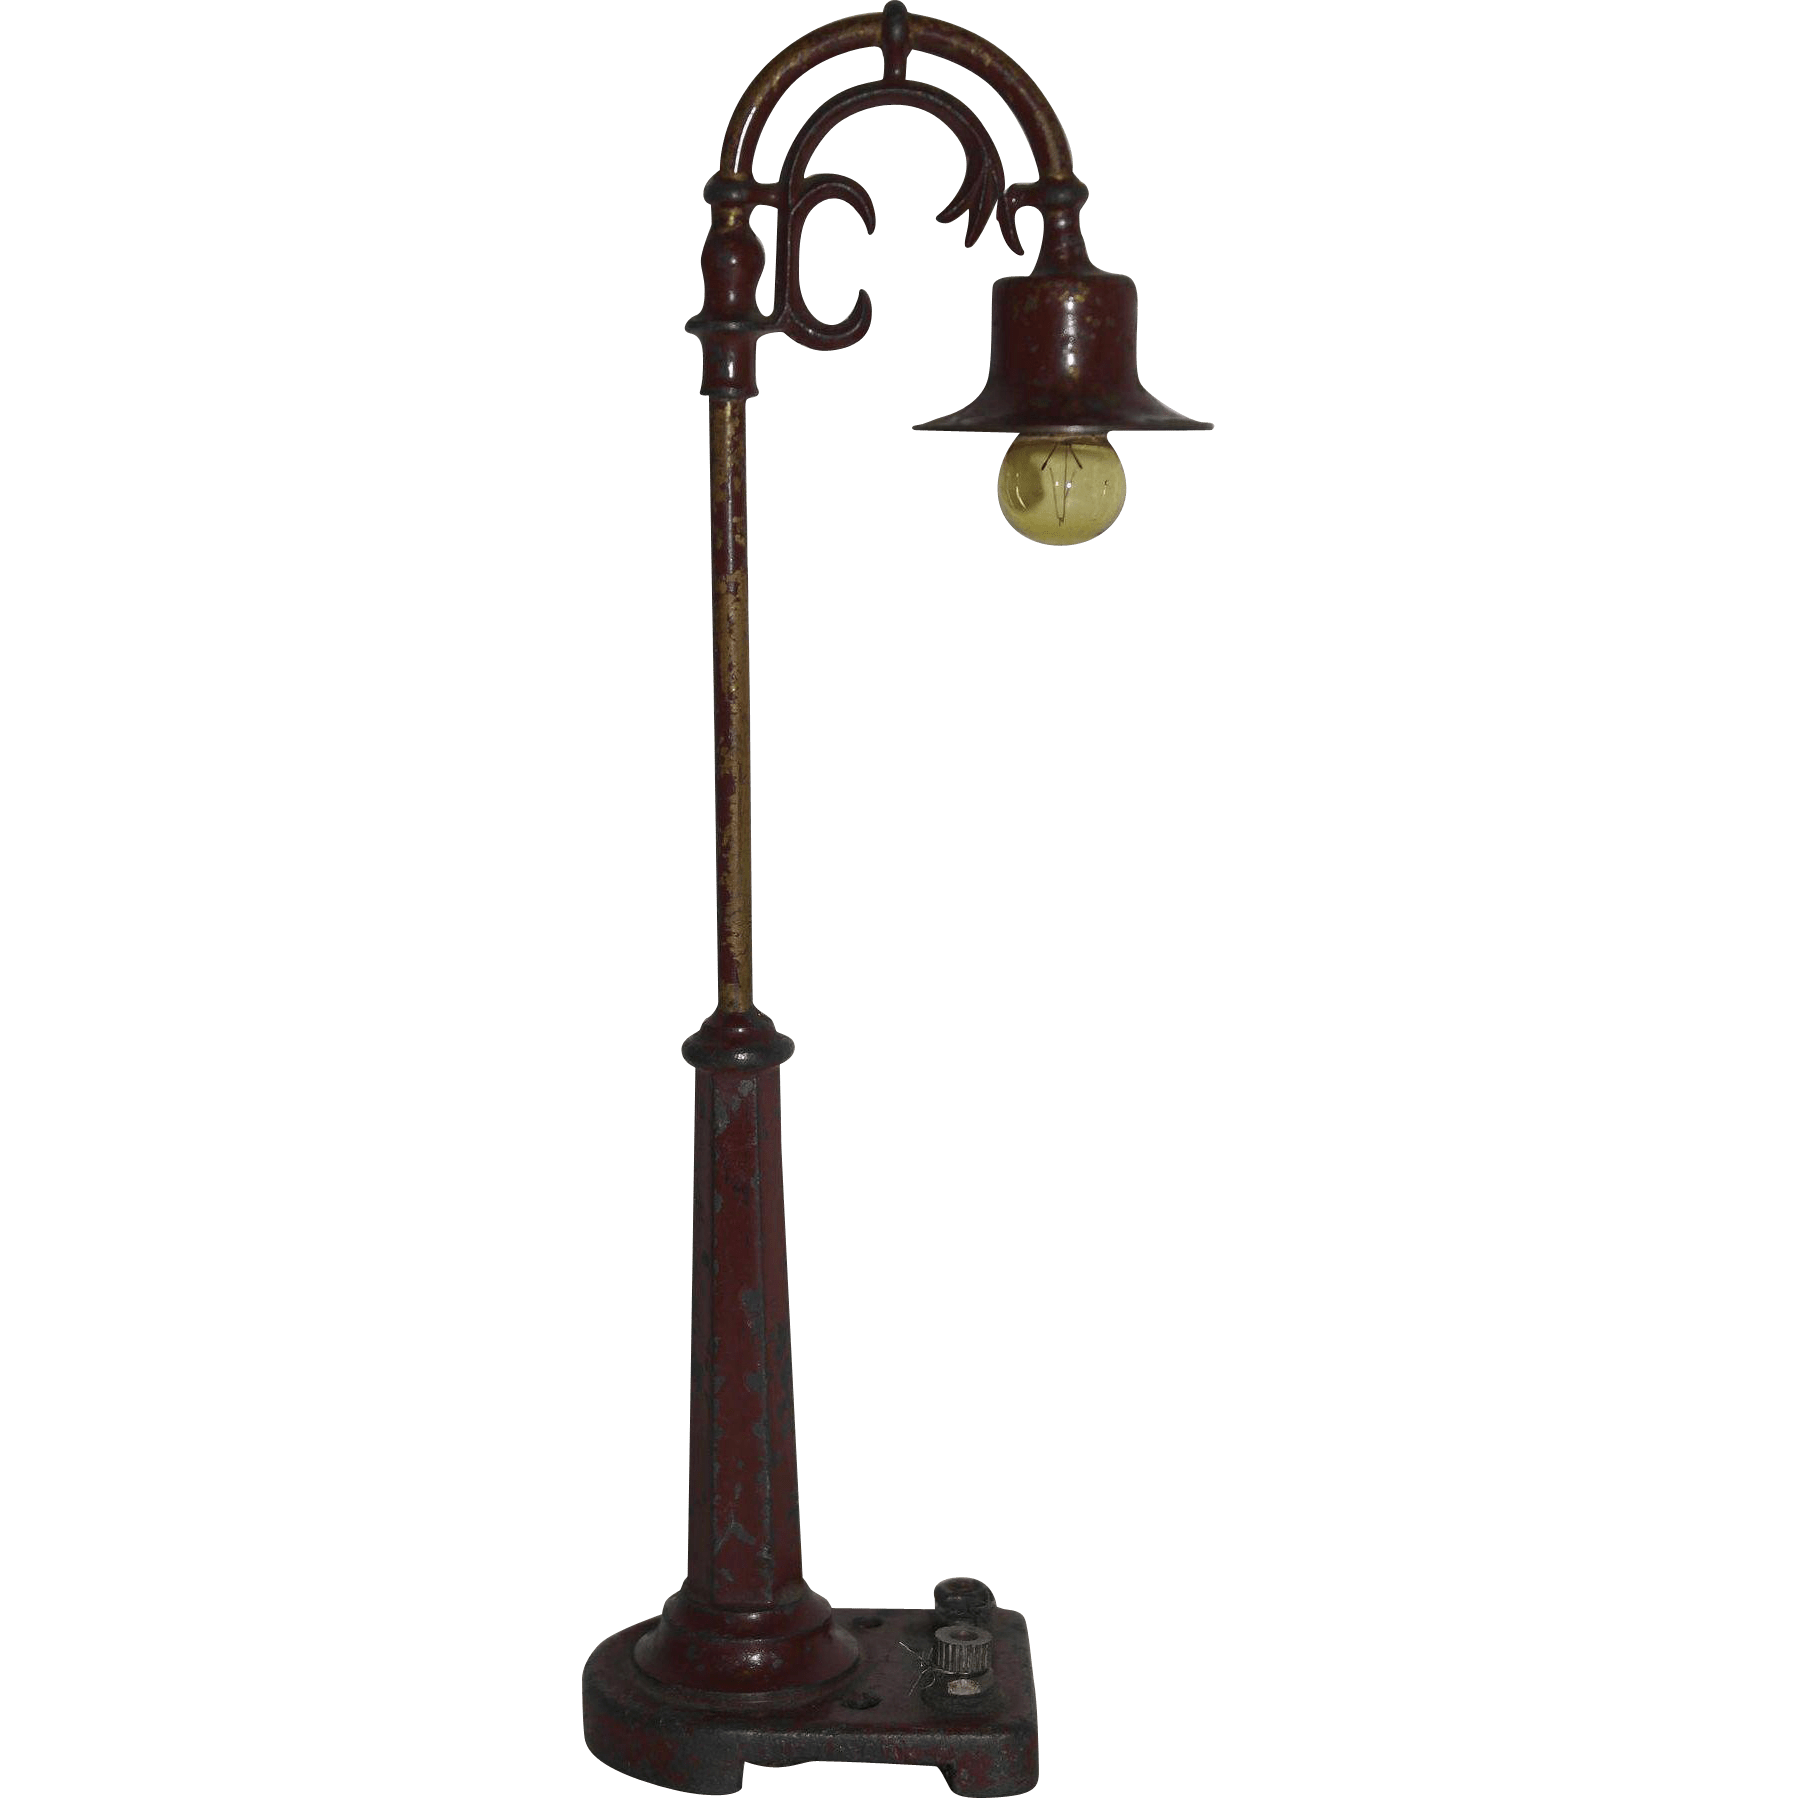 Vintage Lionel Lamp Post Sold On Ruby Lane